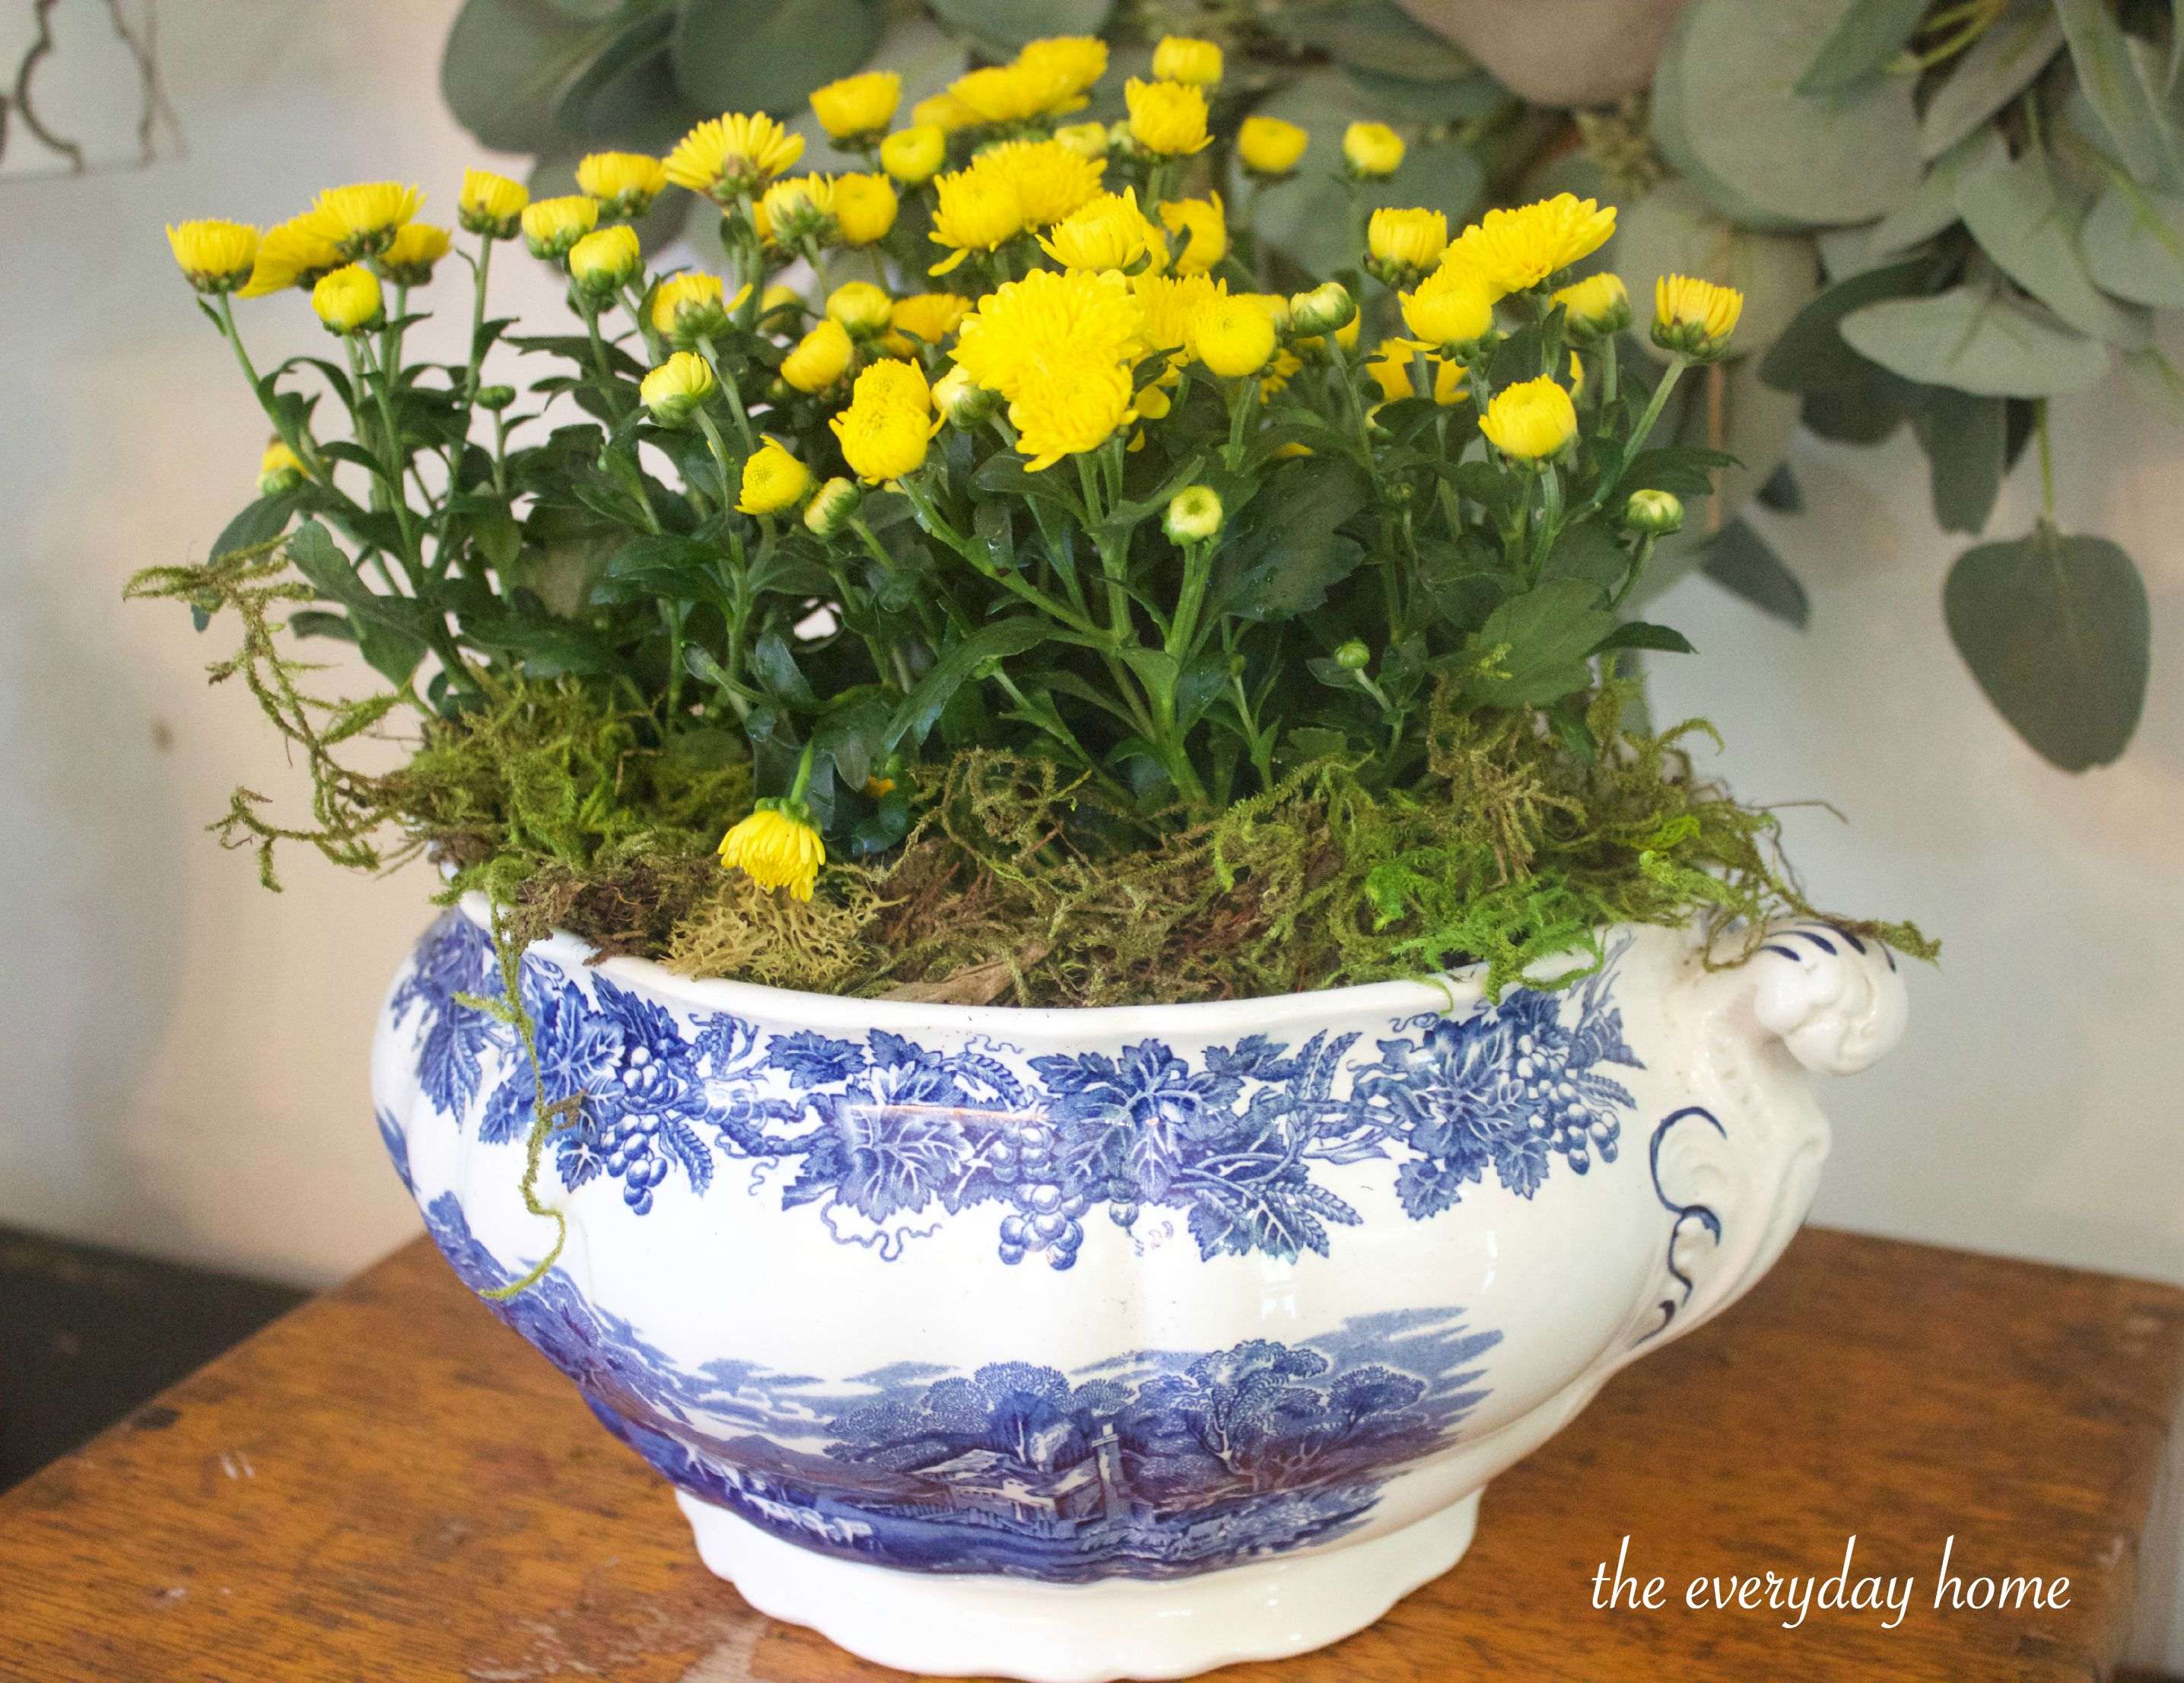 Yellow Mums in Blue Bowl The Everyday Home www.everydayhomeblog.com